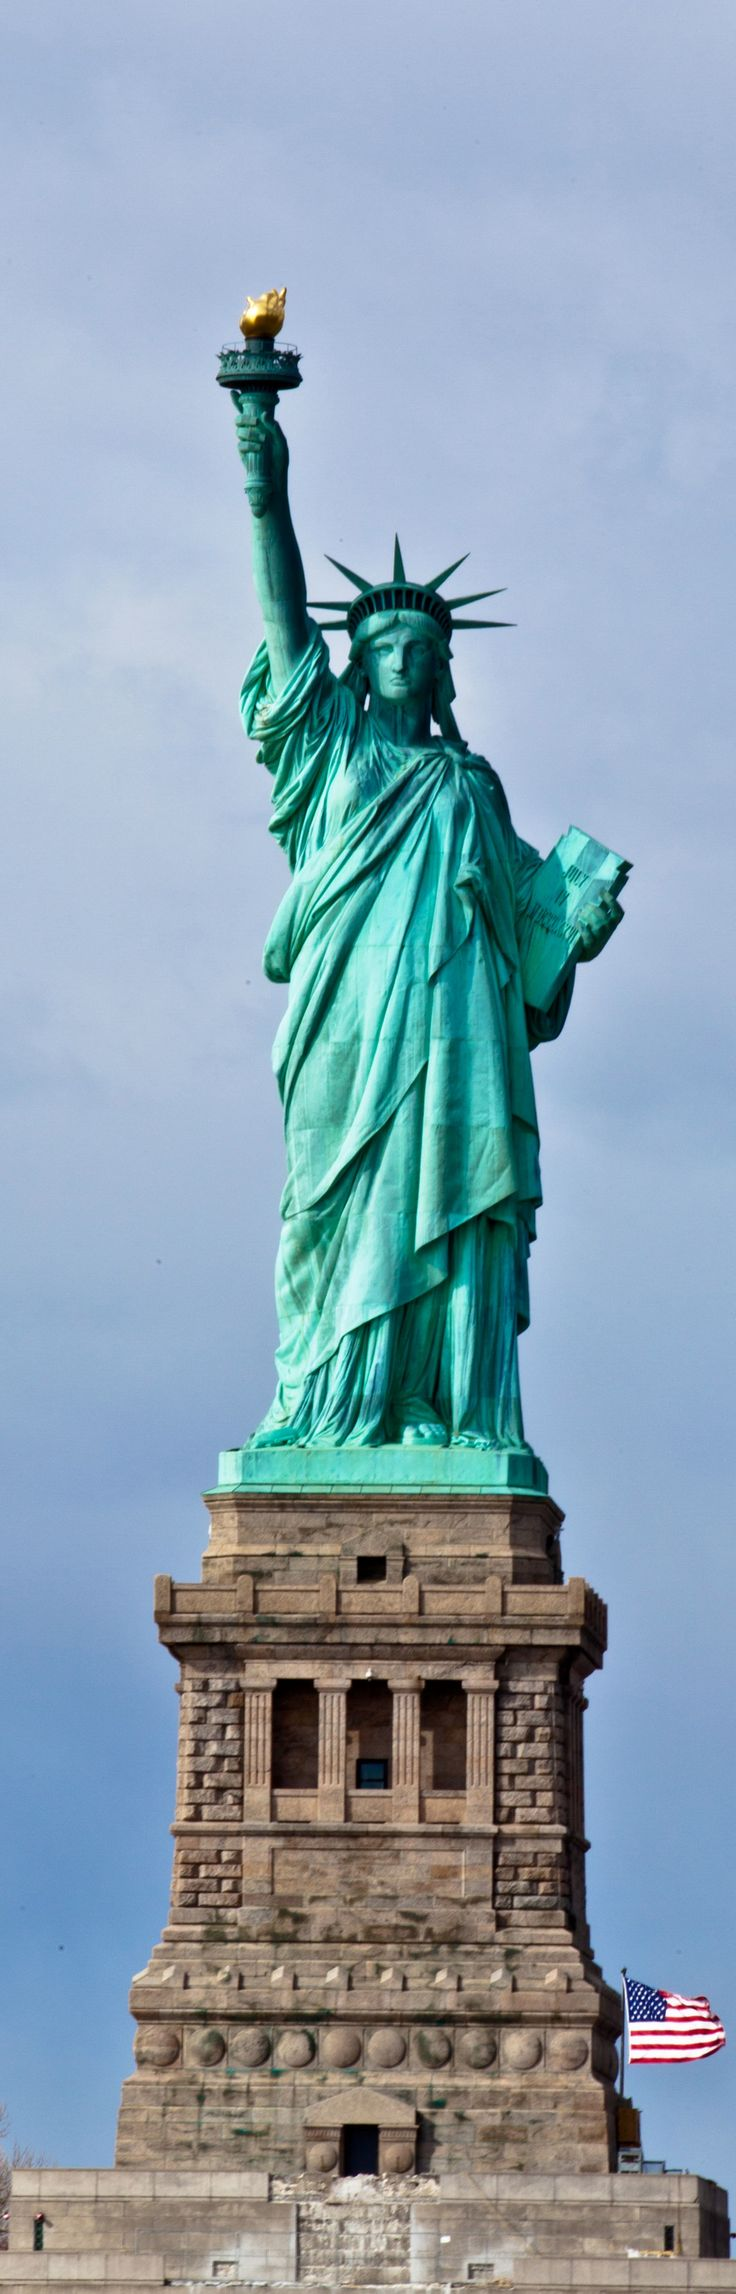 "The Statue of Liberty in New York City's Hudson River - ""Give Me Your Poor, Your Tired, Your Huddled Masses Yearning to Breathe Free"" - Long, Tall, Vertical Pins."